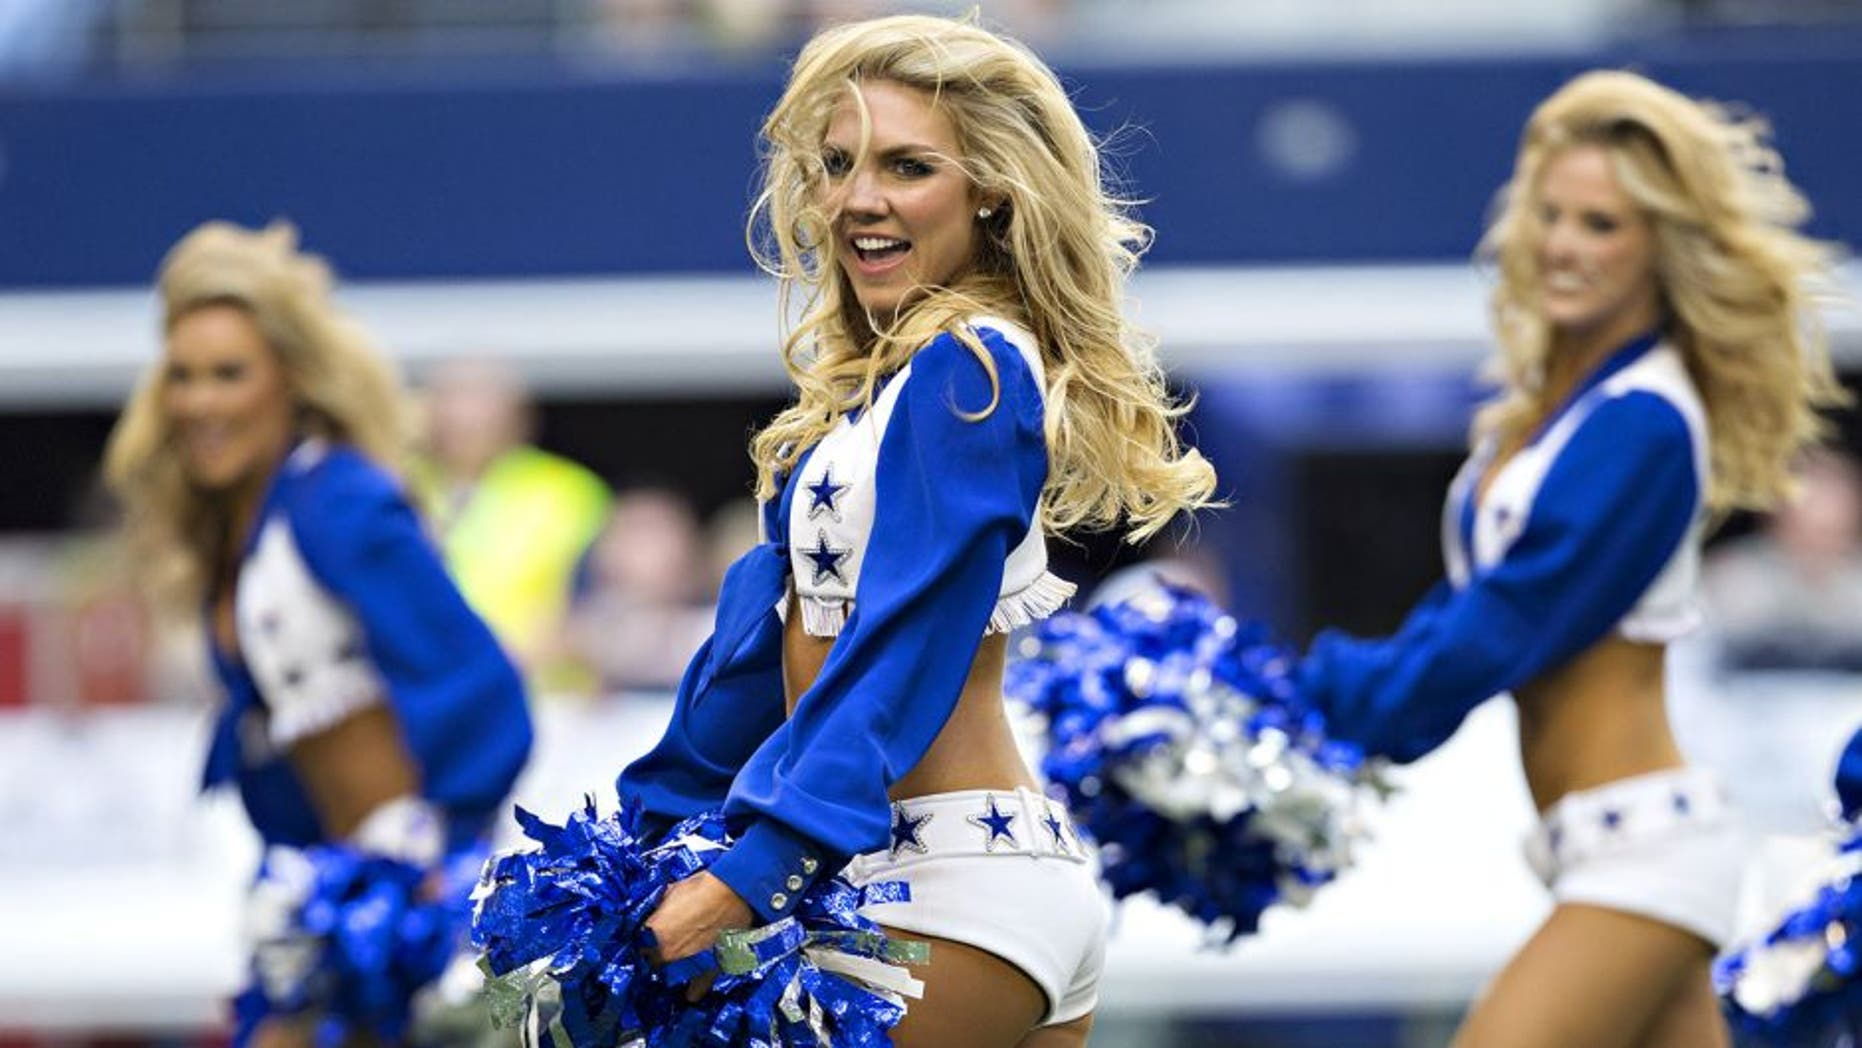 ARLINGTON, TX - NOVEMBER 02: Cheerleaders of the Dallas Cowboys perform before a game against the Arizona Cardinals at AT&T Stadium on November 2, 2014 in Arlington, Texas. The Cardinals defeated the Cowboys 28-17. (Photo by Wesley Hitt/Getty Images)